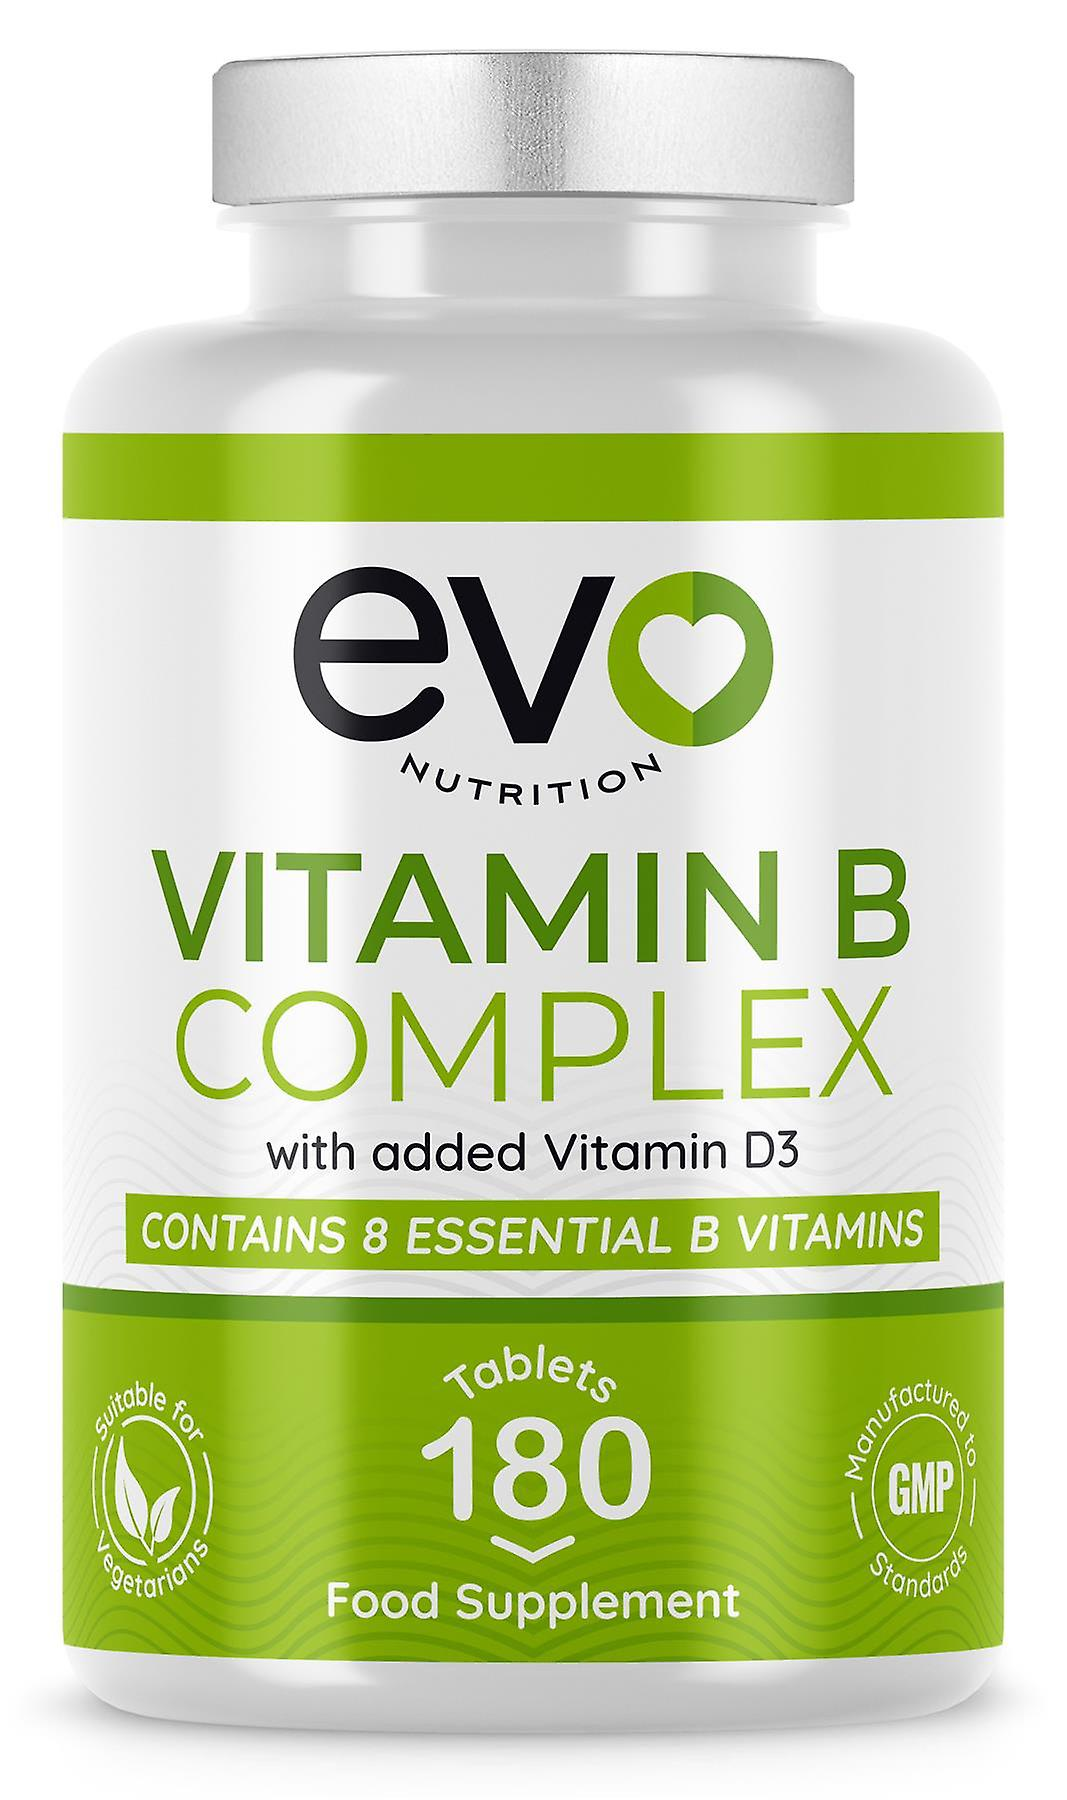 Vitamin B Complex enriched with Vitamin D3 (180 Tablets) - Evo Nutrition